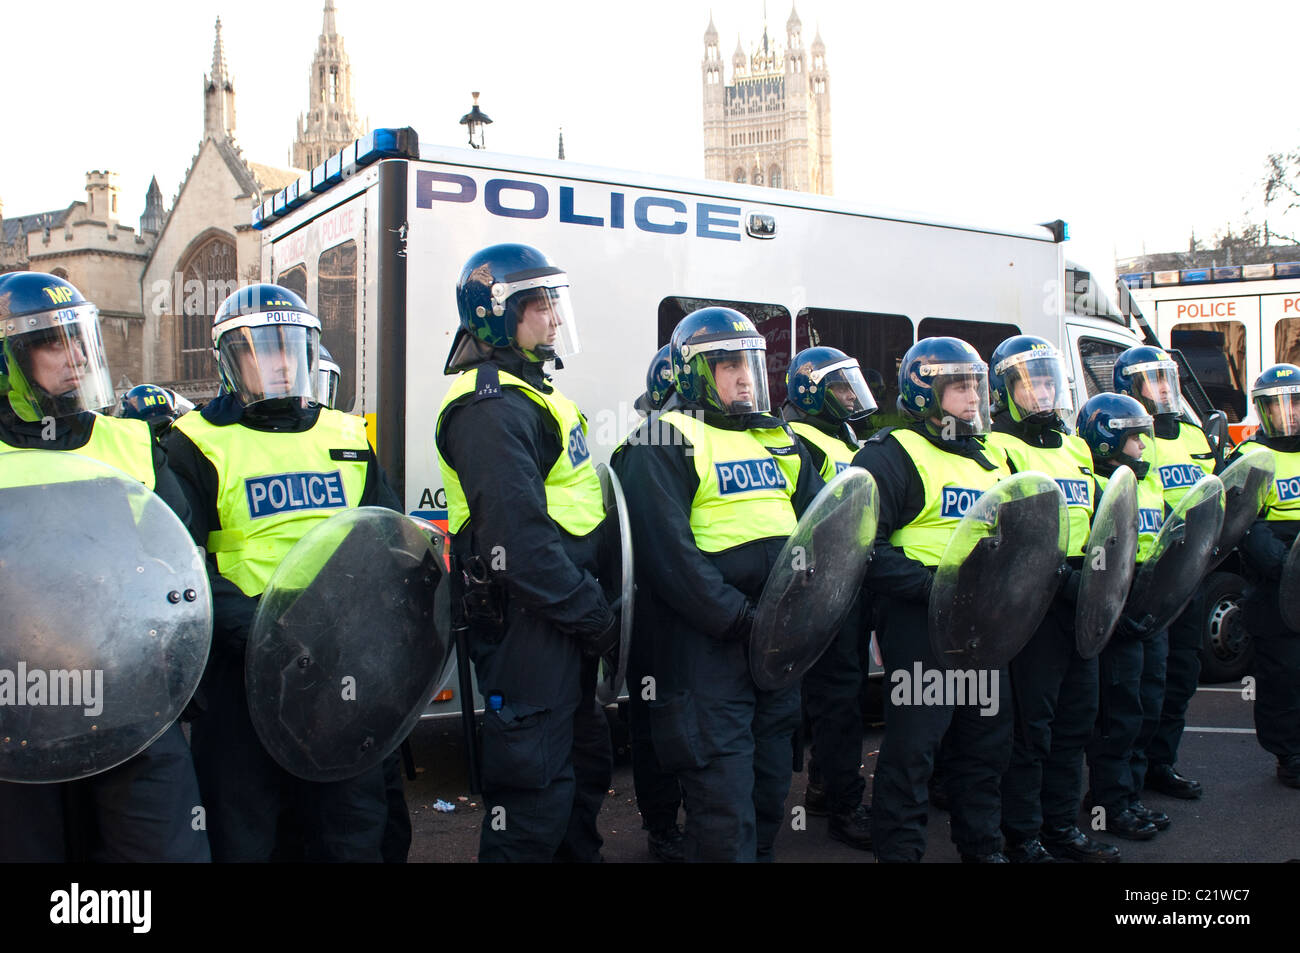 Line of Riot Police, Parliament Square, Student protest against University fees, London, 09/12/2010 - Stock Image